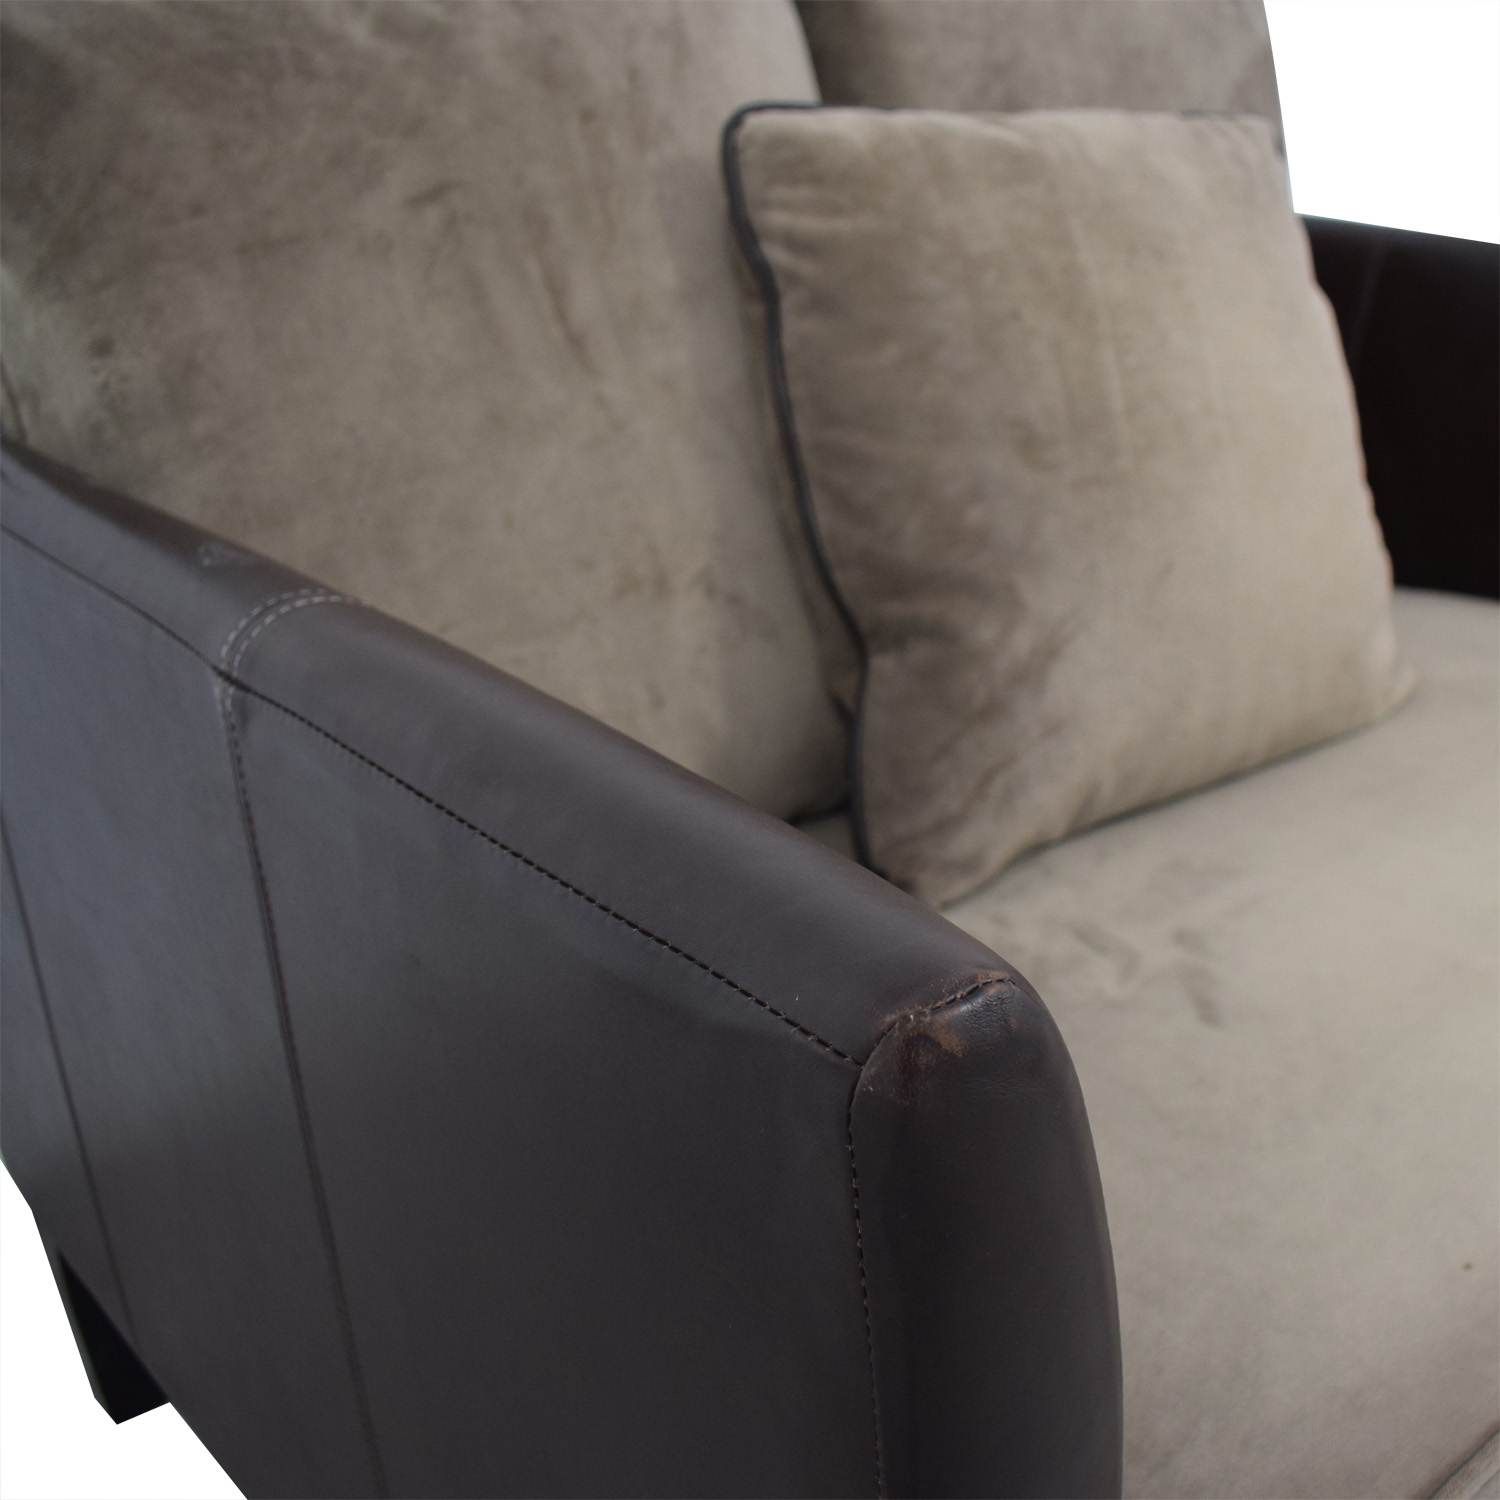 Bernhardt Bernhardt Two-Tone Brown and Beige Accent Chair dimensions